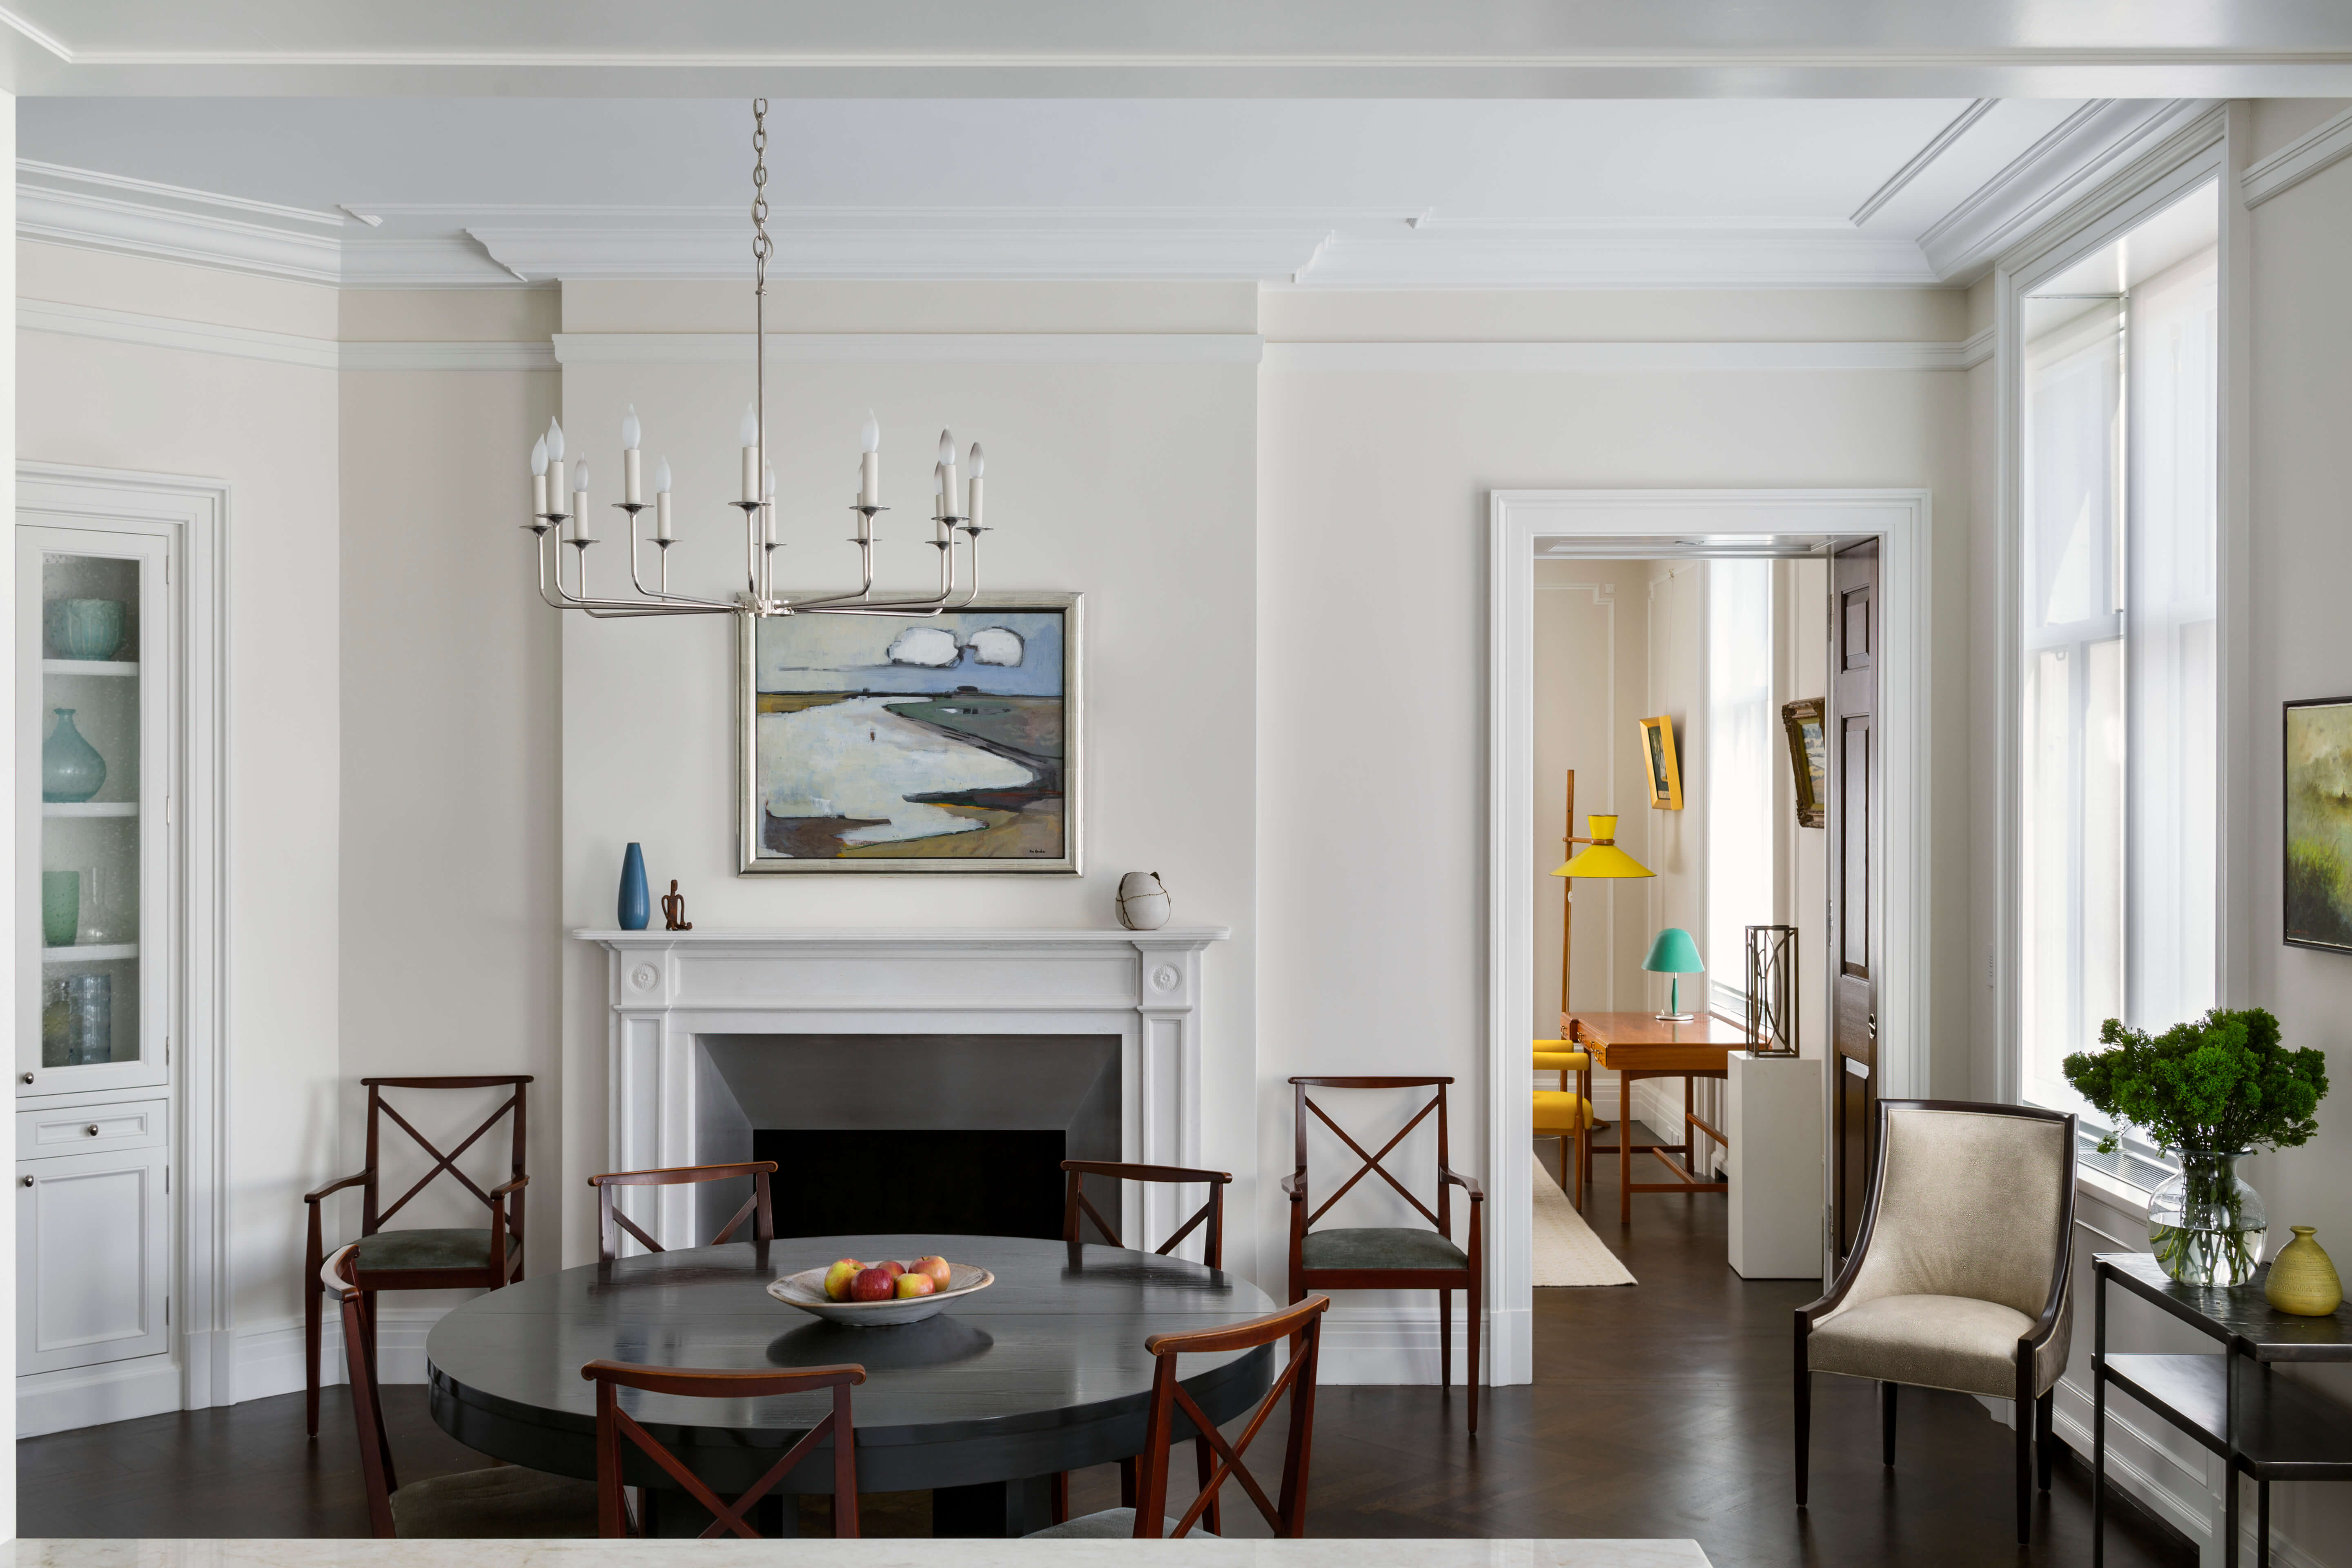 The Apthorp Dining Room